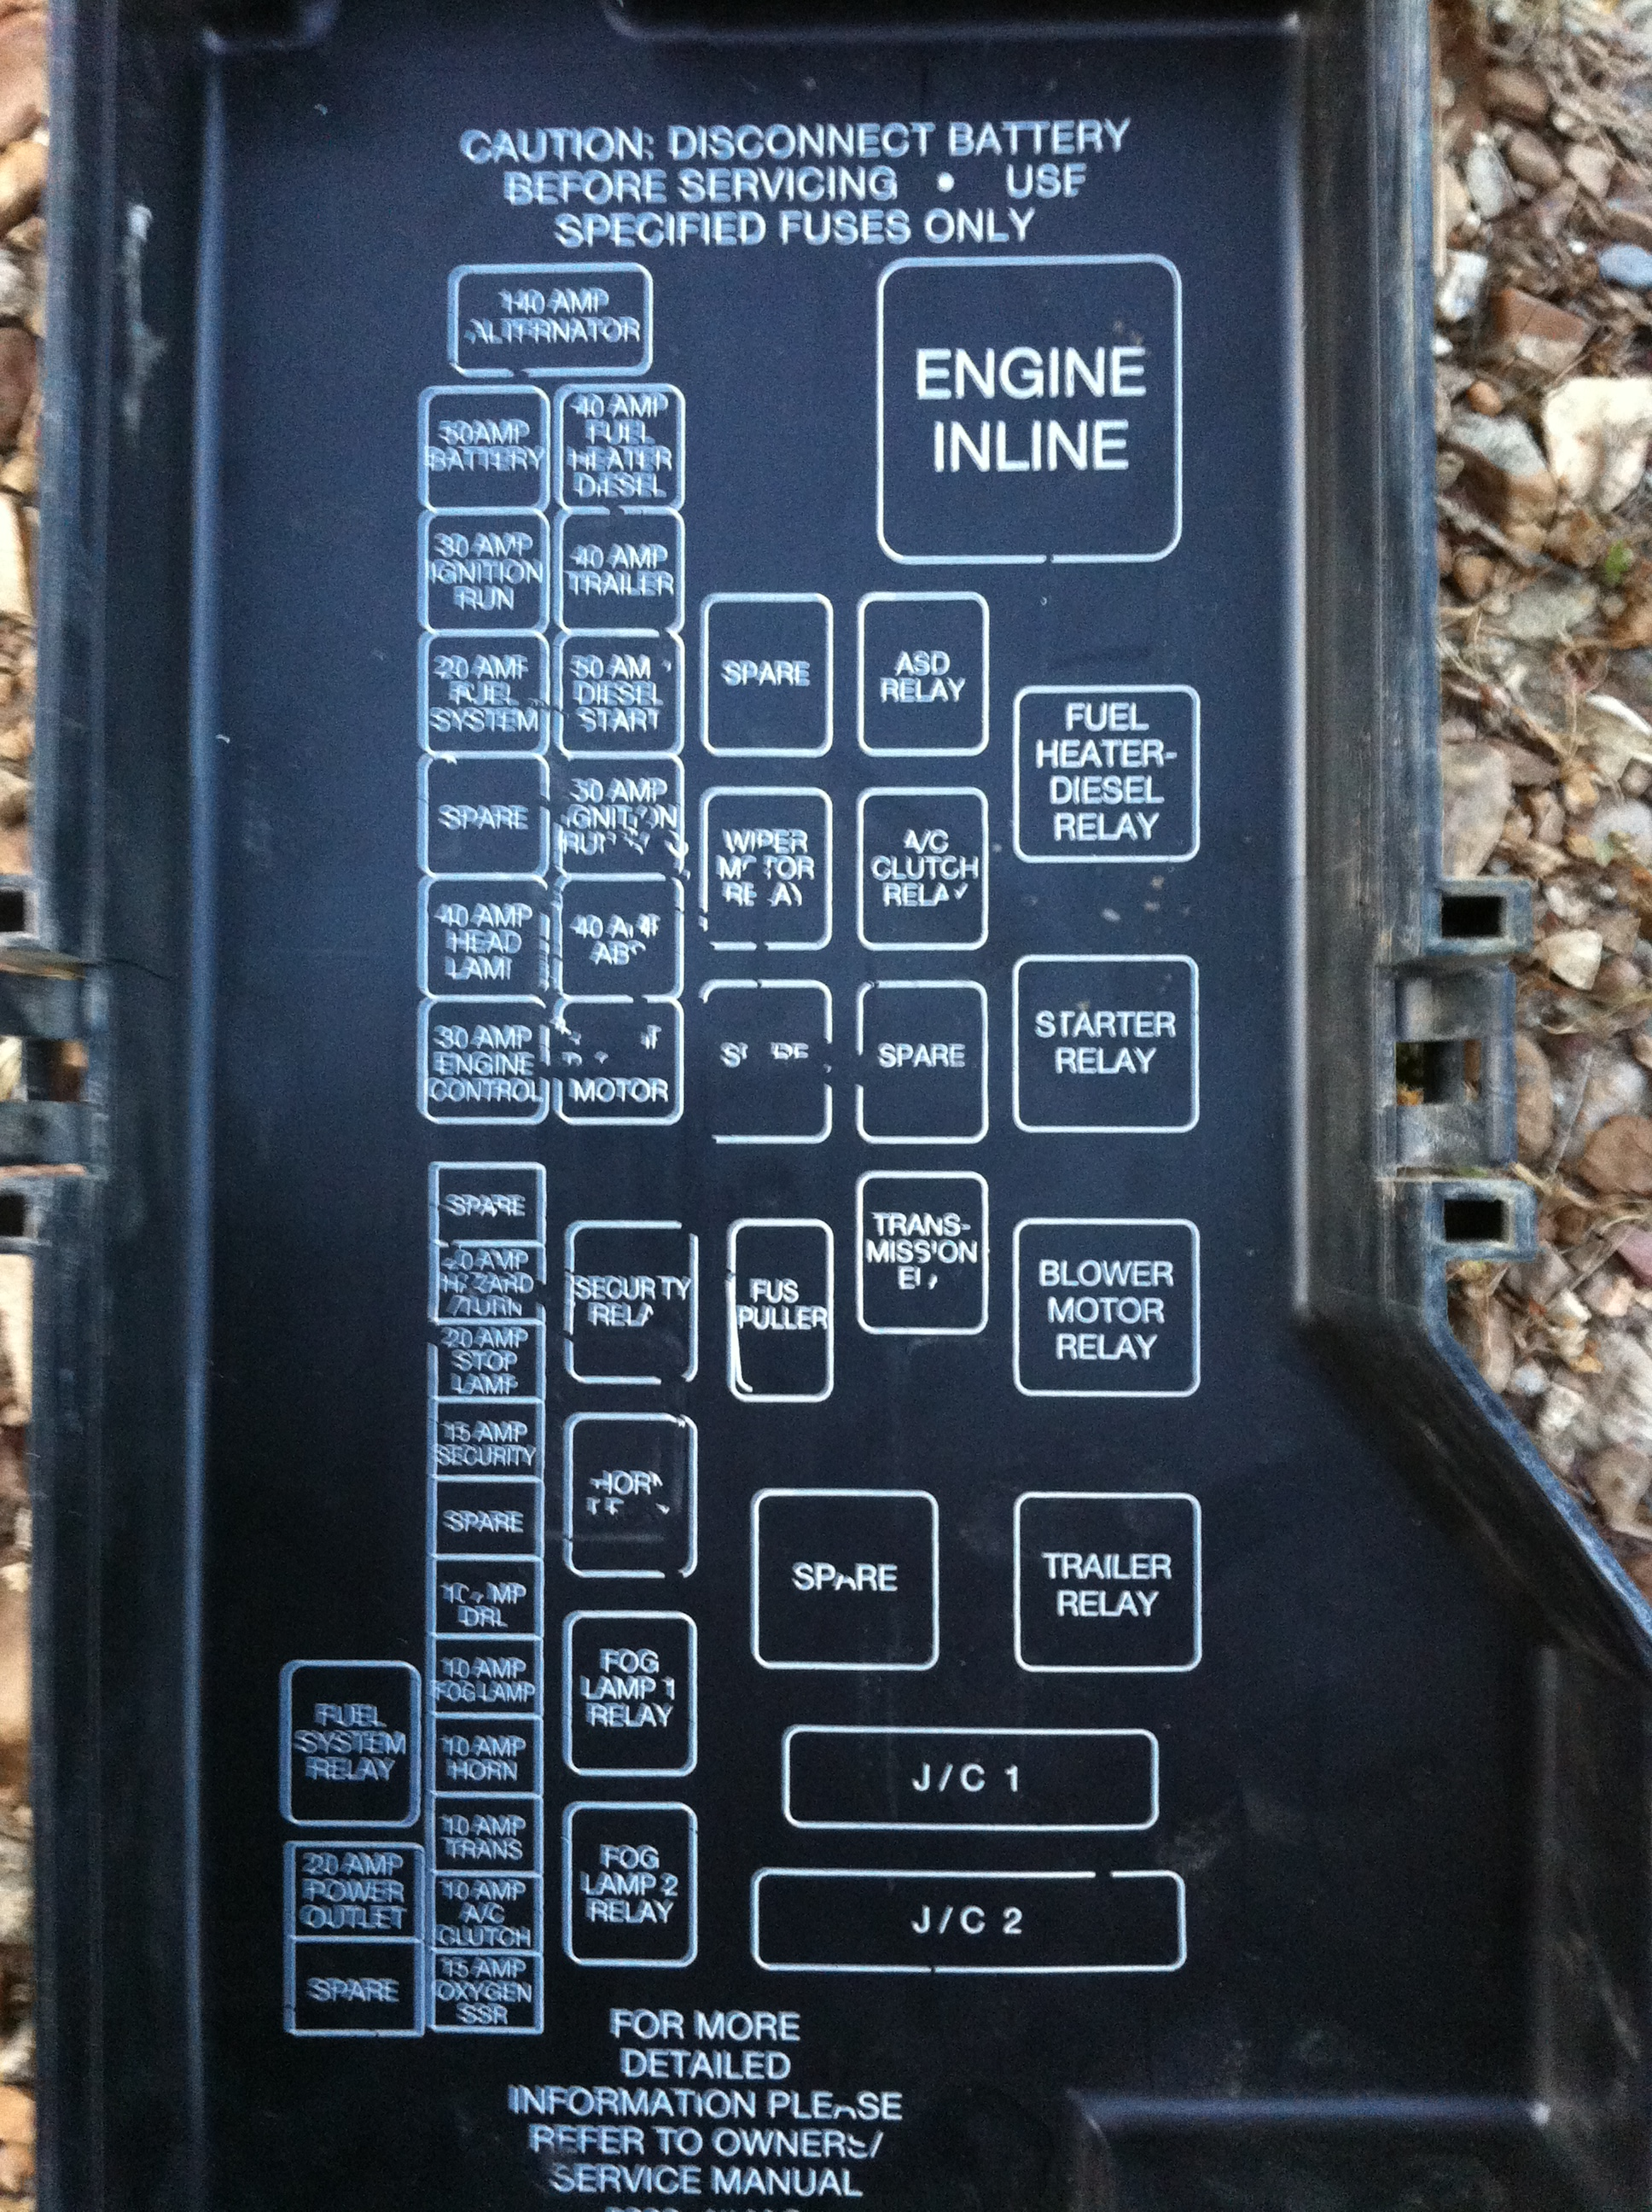 2012 05 22_134436_006 98 dodge ram fuse box diagram 08 dodge ram fuse box diagram \u2022 free 2001 dodge intrepid fuse box diagram at mifinder.co